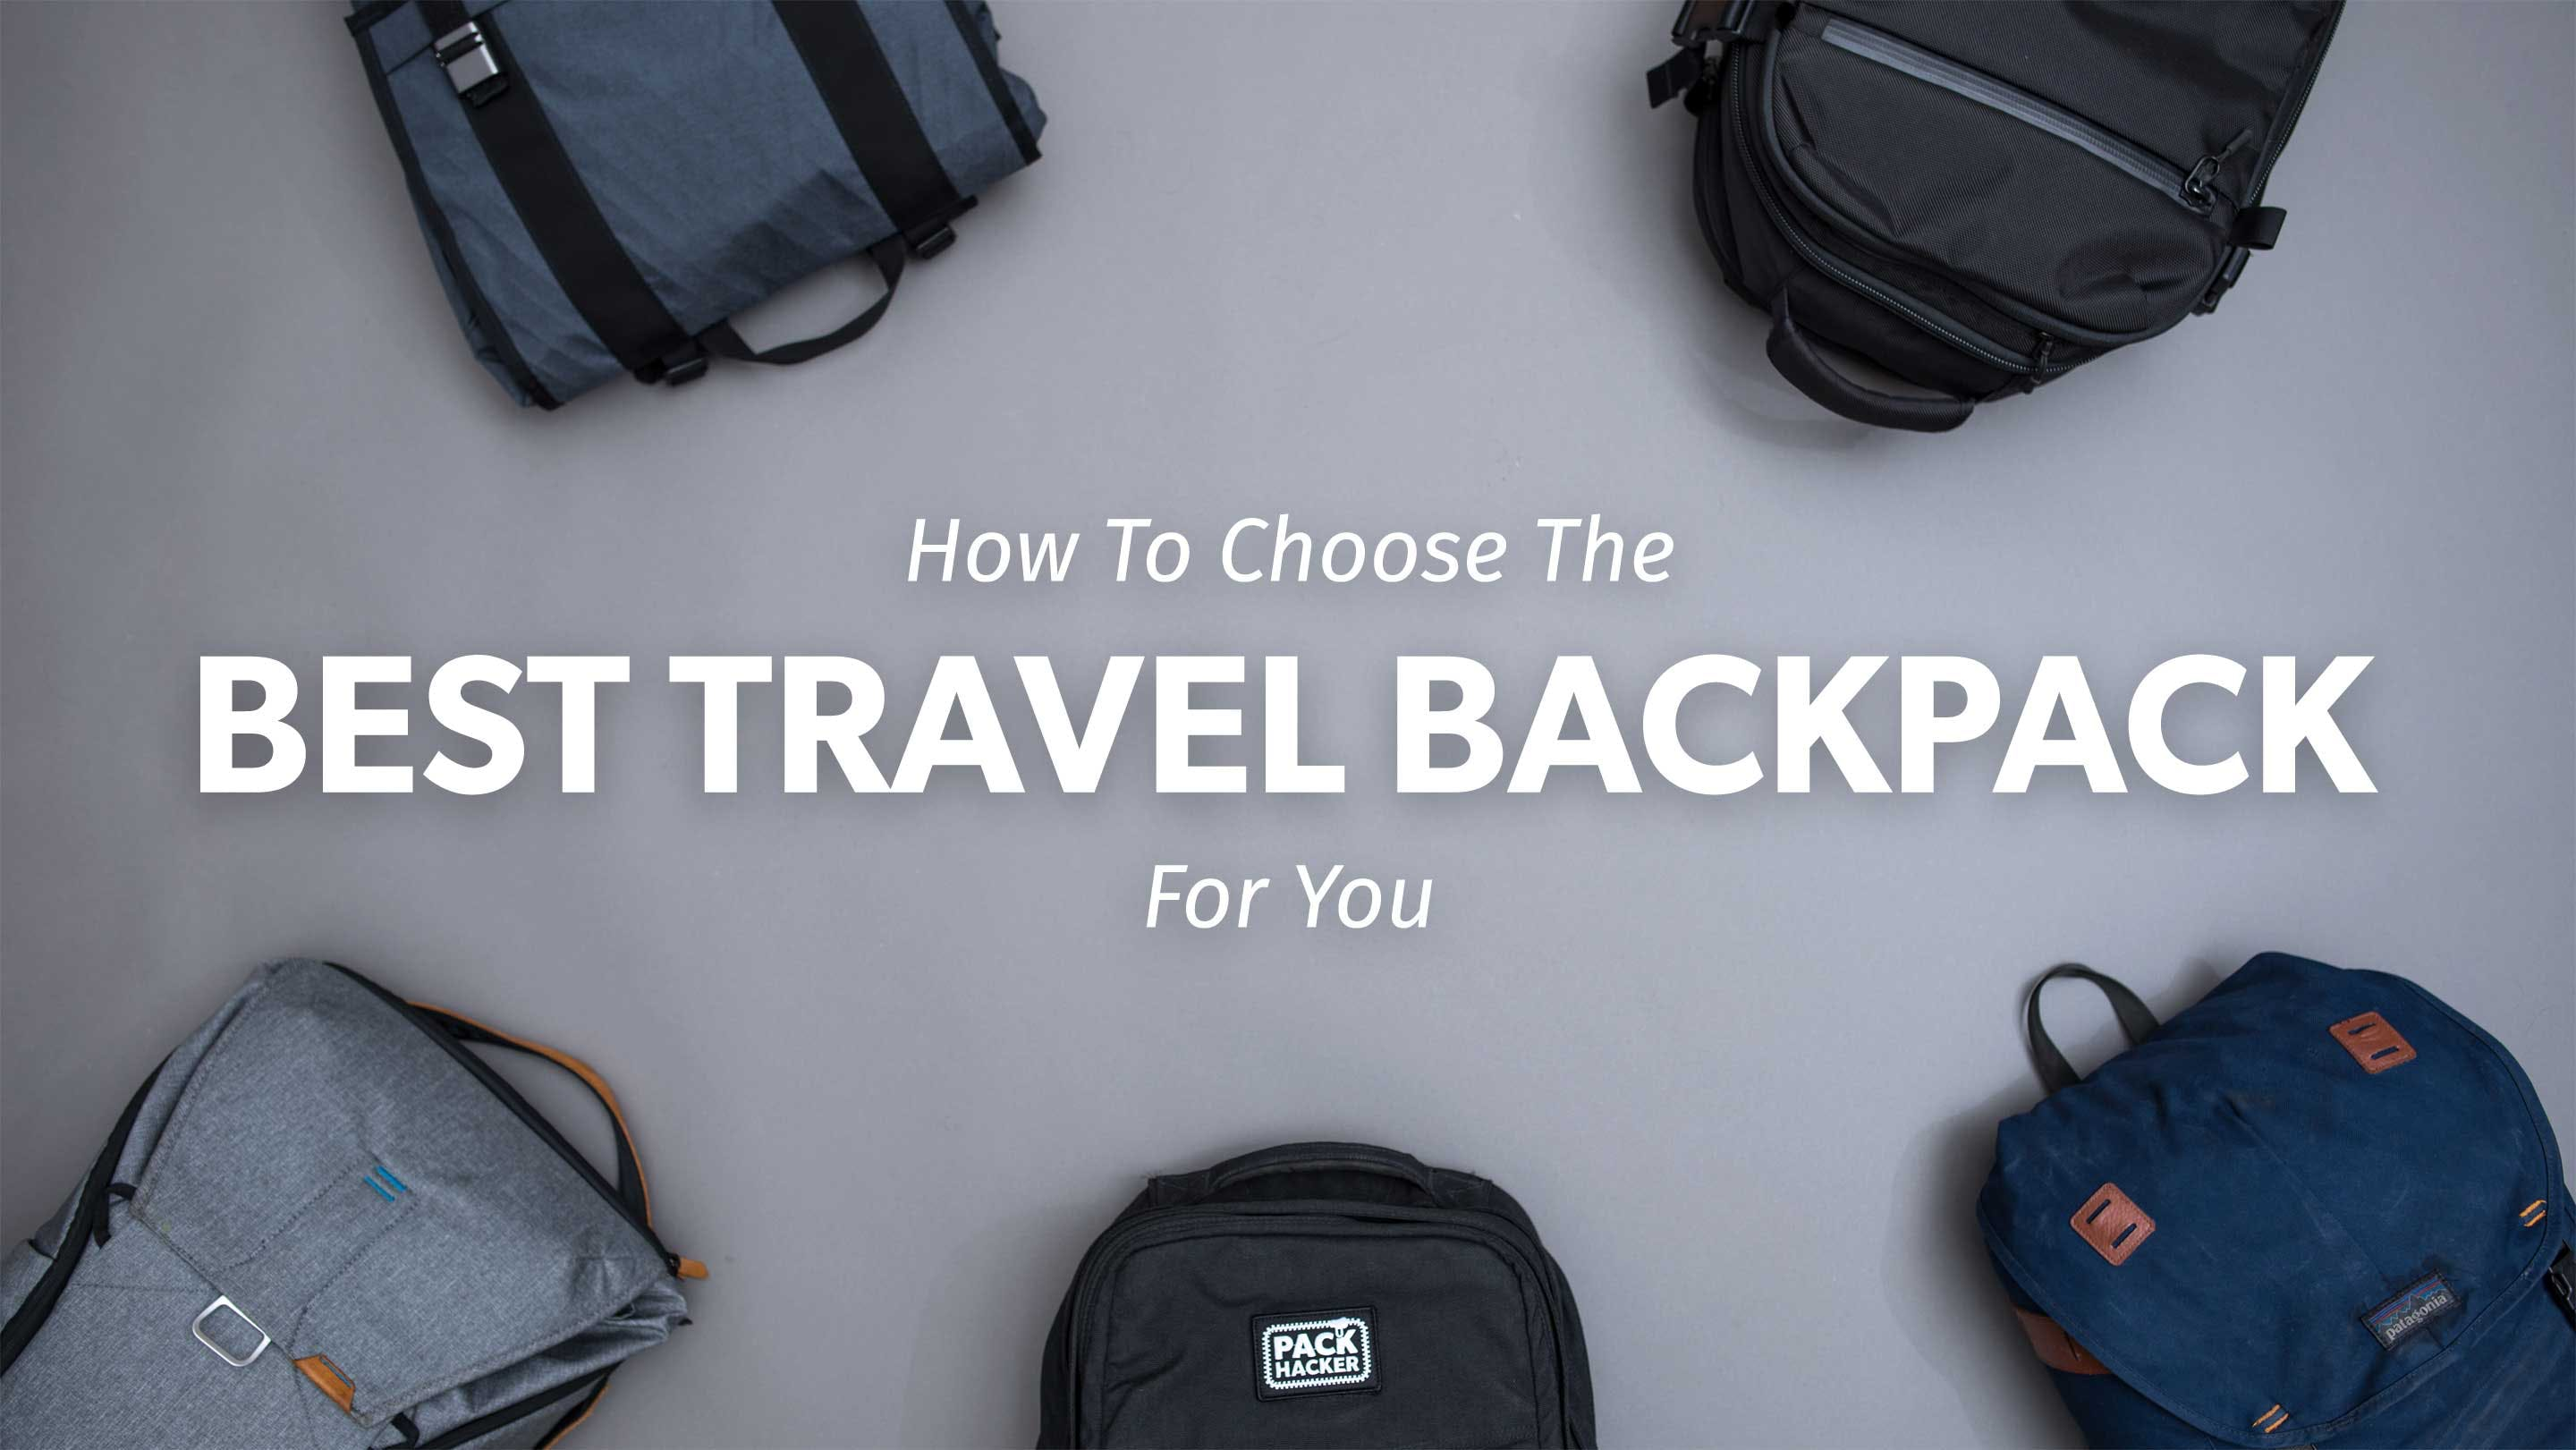 c83b2c71d7 Best Travel Backpack  How To Pick In 2019